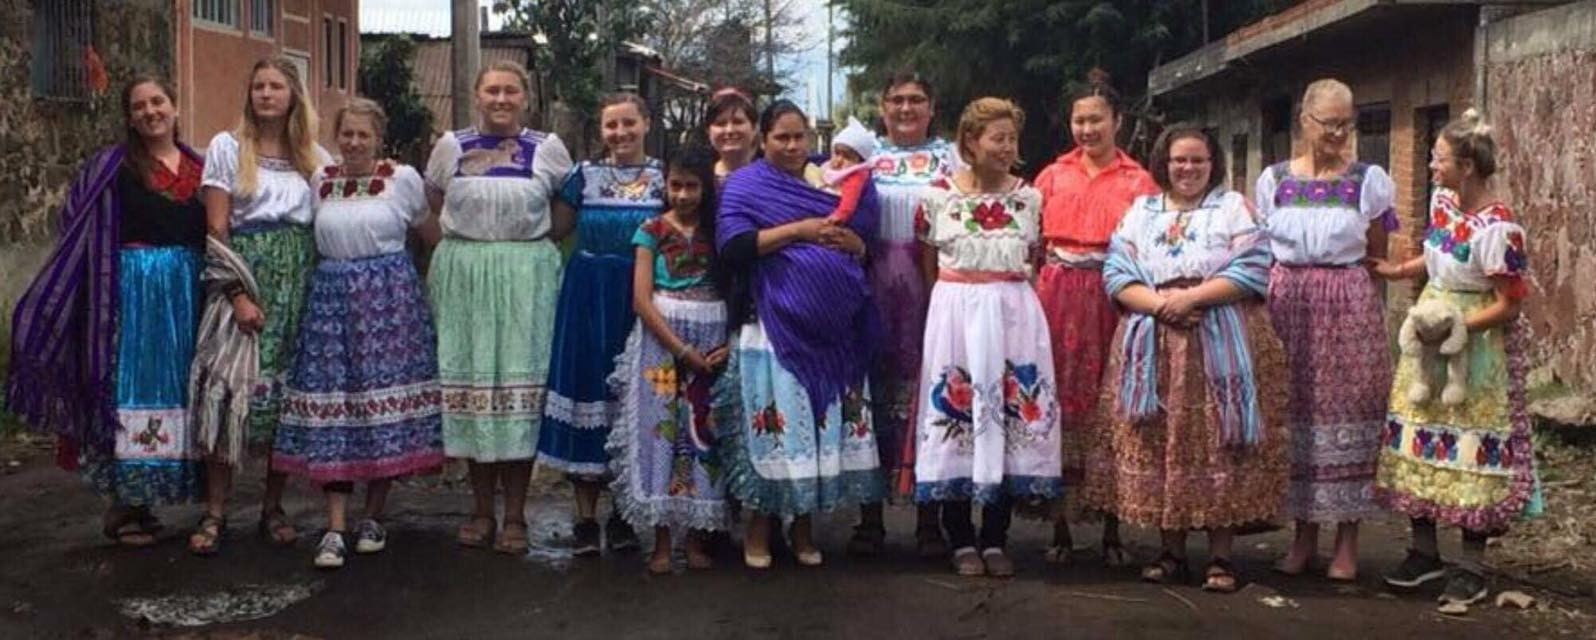 ywam-tyler-missionary-outreach-dts-girls-group-mexican-dress